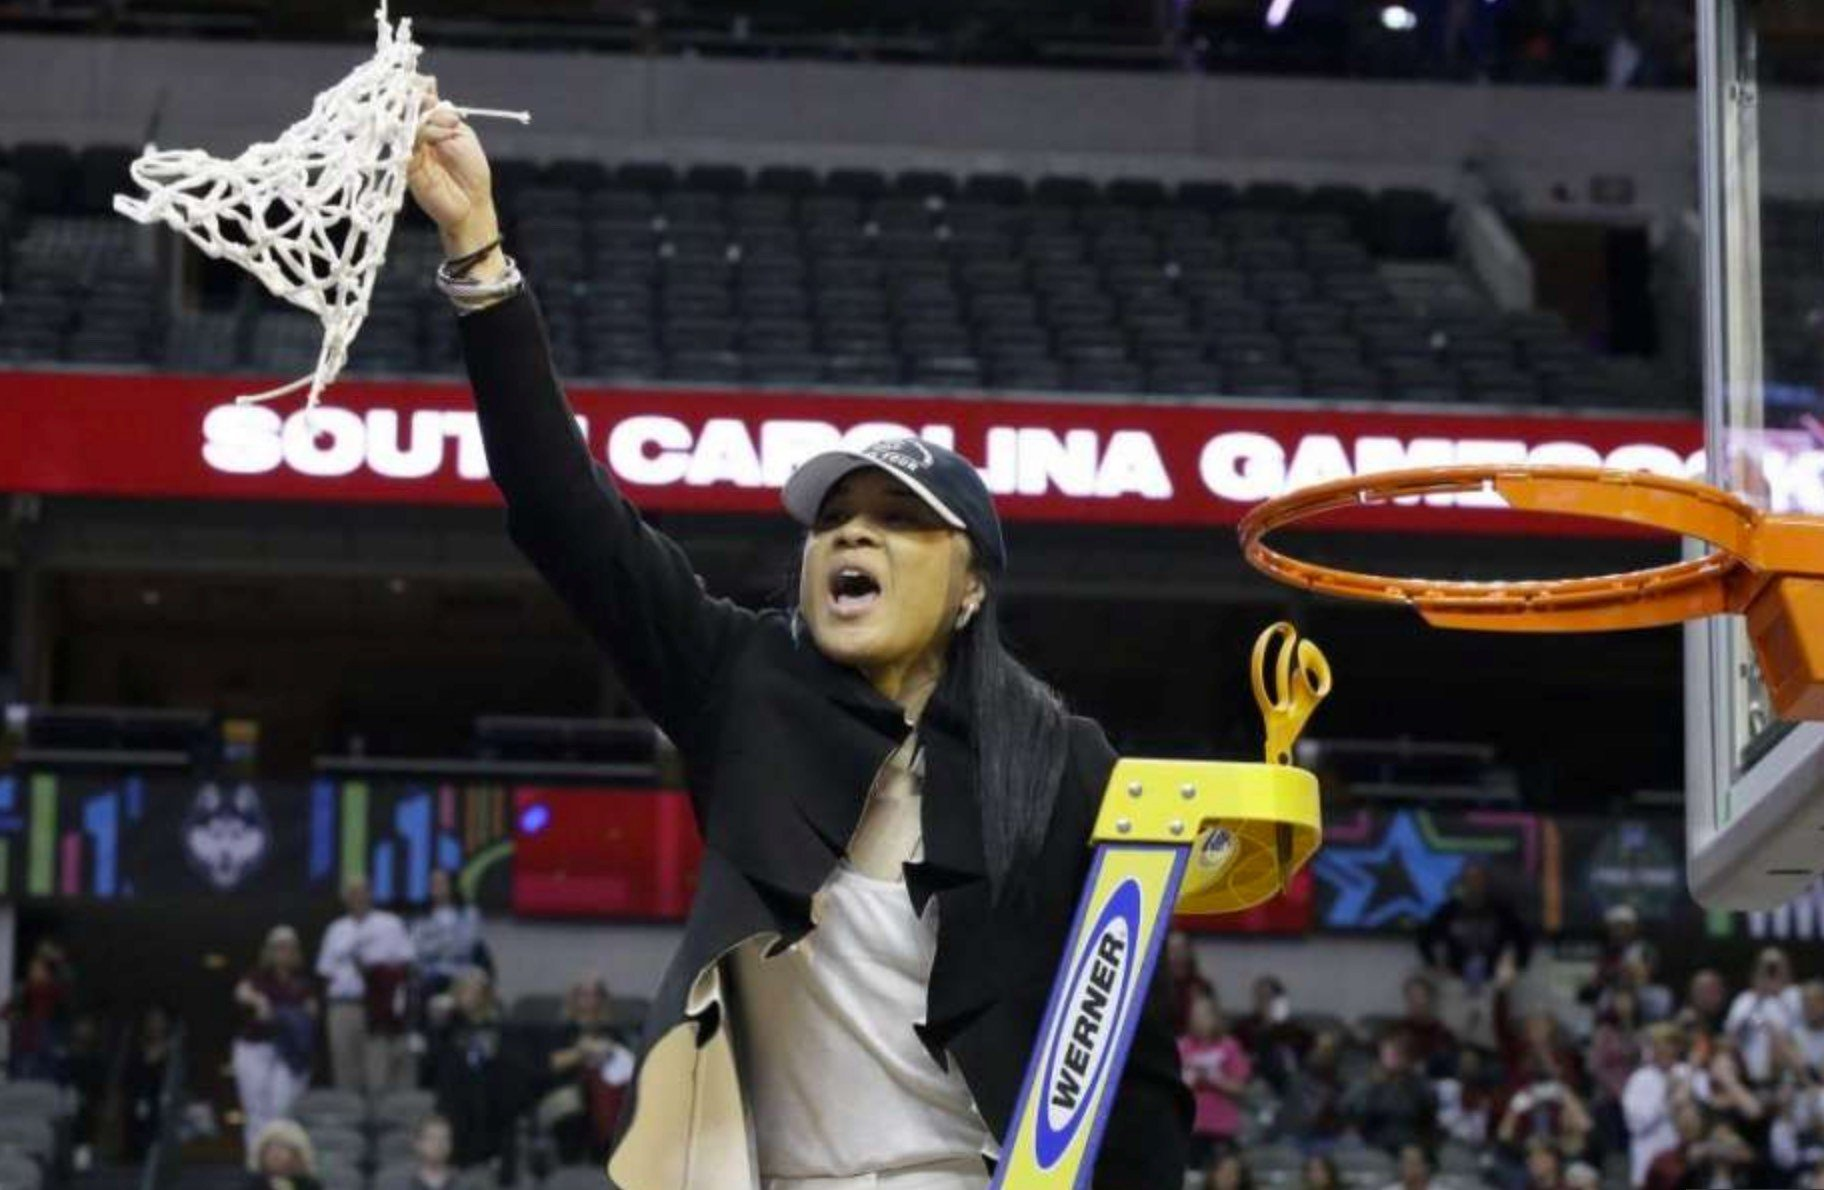 Dawn Staley cut the net on her first NCAA national championship. Staley is only the second African-American coach to win the title.